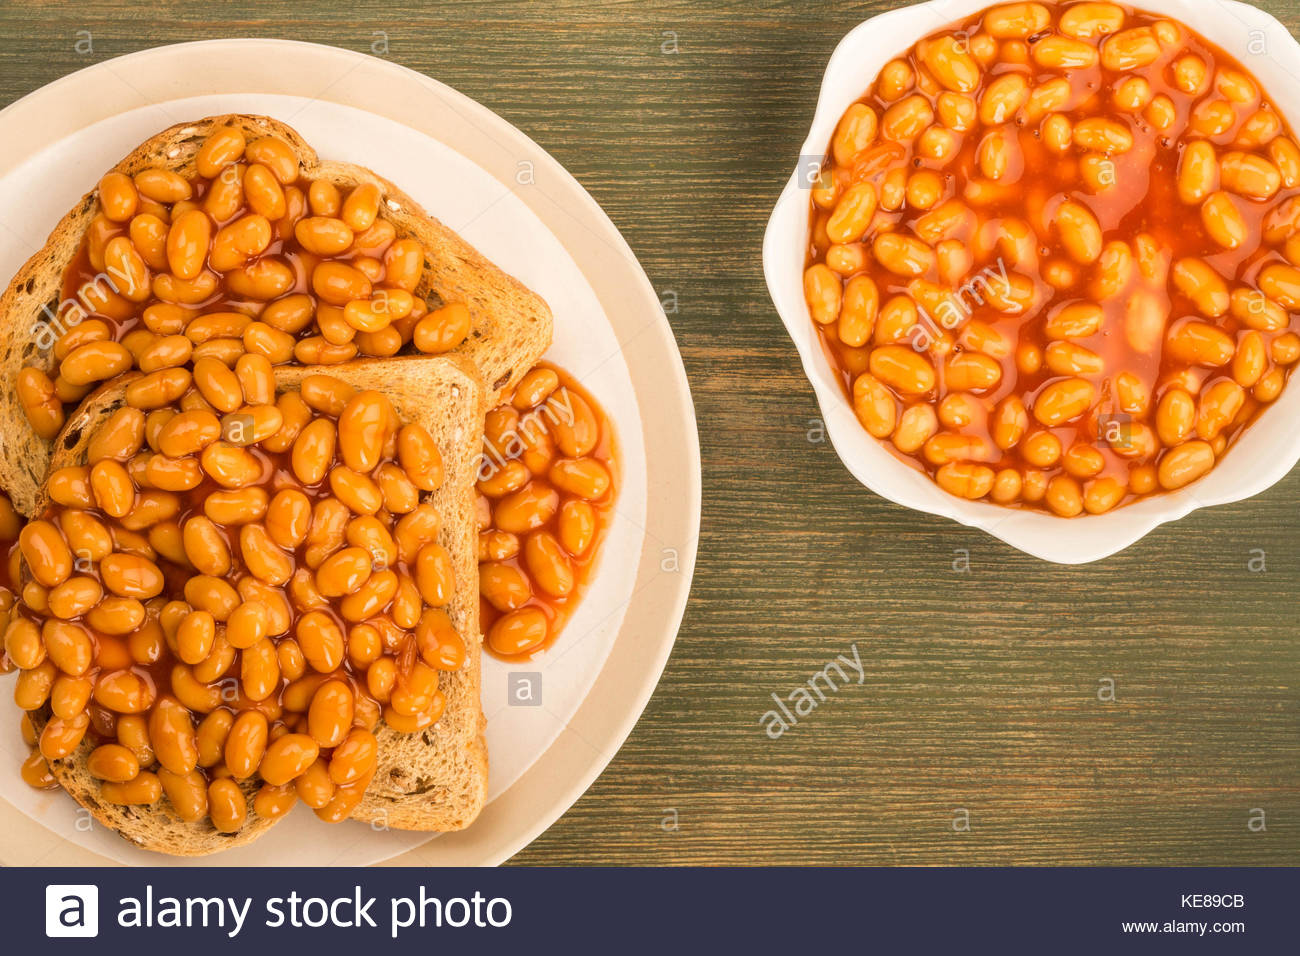 Baked Beans in Tomato Sauce on Toast On A Green Wooden Background 1300x956